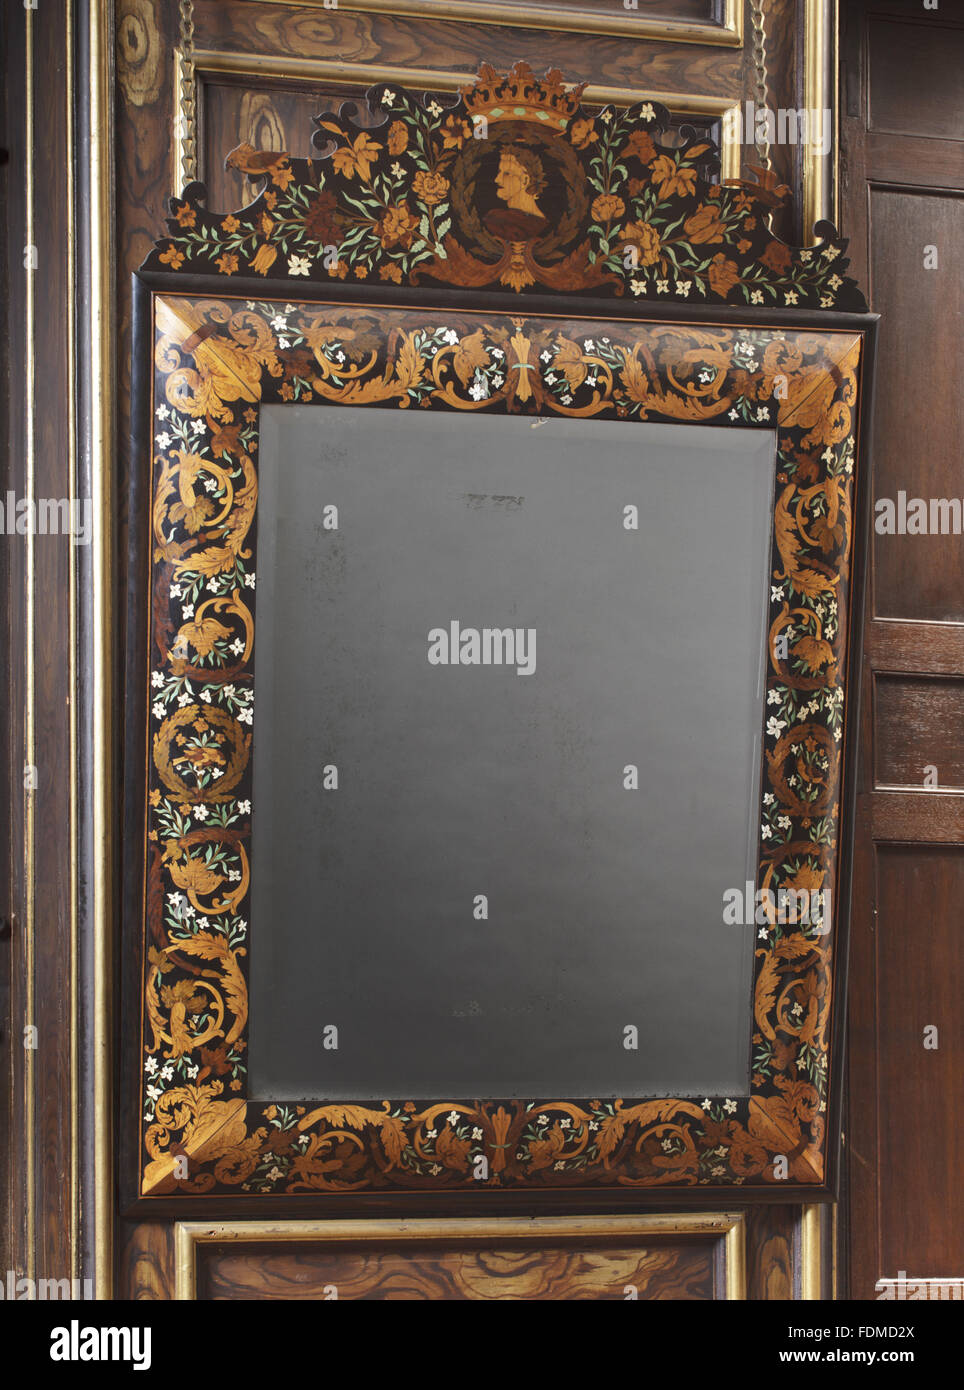 Wall mirror, 1675, of ebony, decorated with floral marquetry in various woods and ivory, some of which is stained - Stock Image